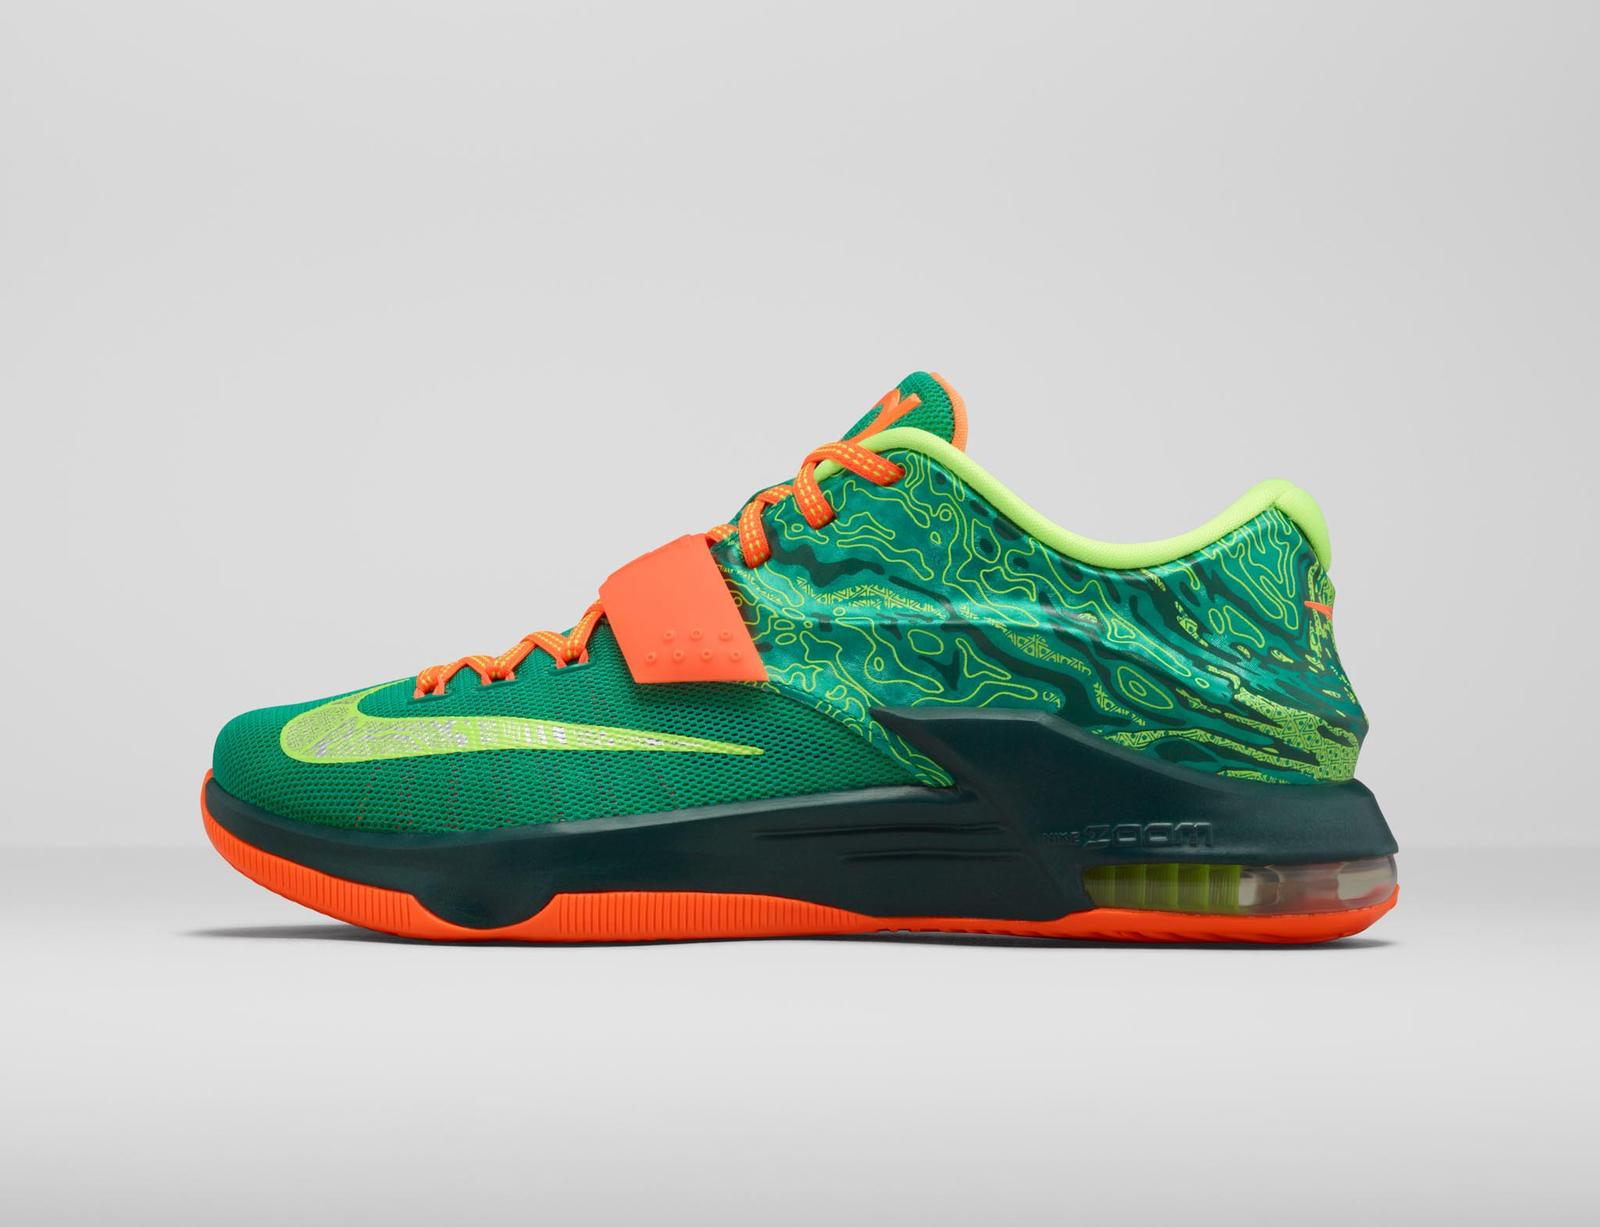 KD7 Weatherman Shoe Brings Heat to the Forecast. KD7 Weatherman shoe ...